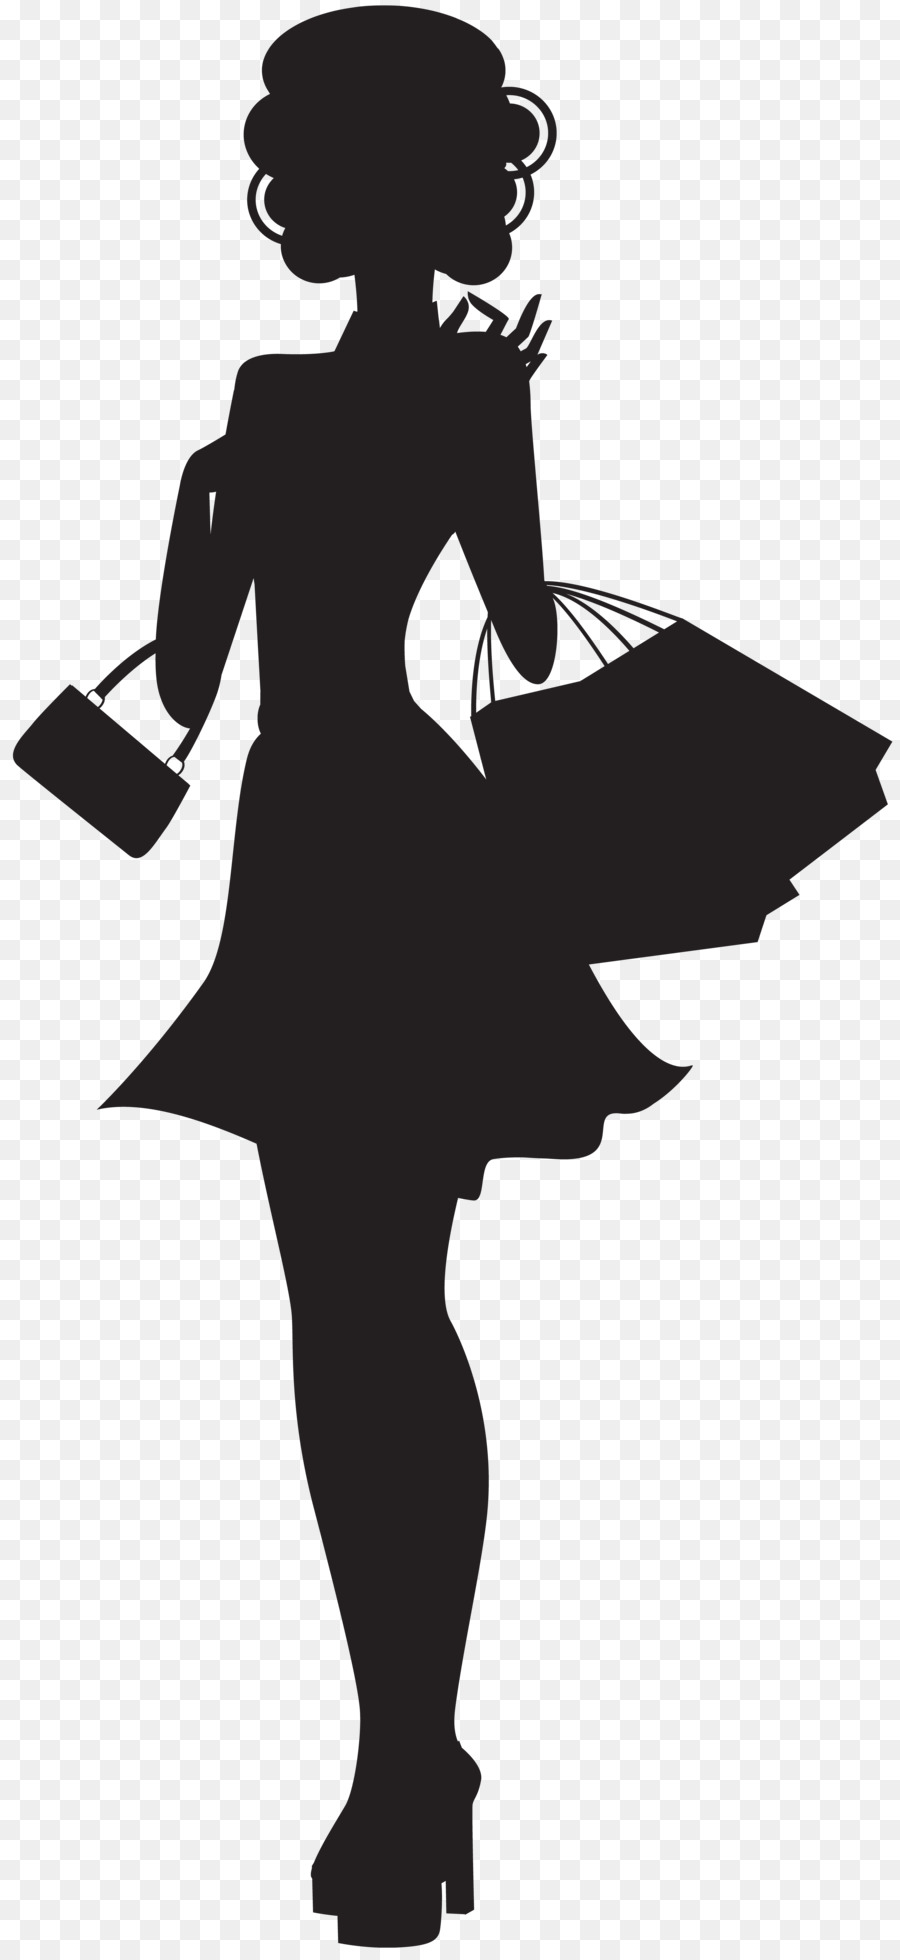 Bw clipart women photographing vector royalty free stock Photography Silhouette Photographer Clip art - Female Silhouette ... vector royalty free stock